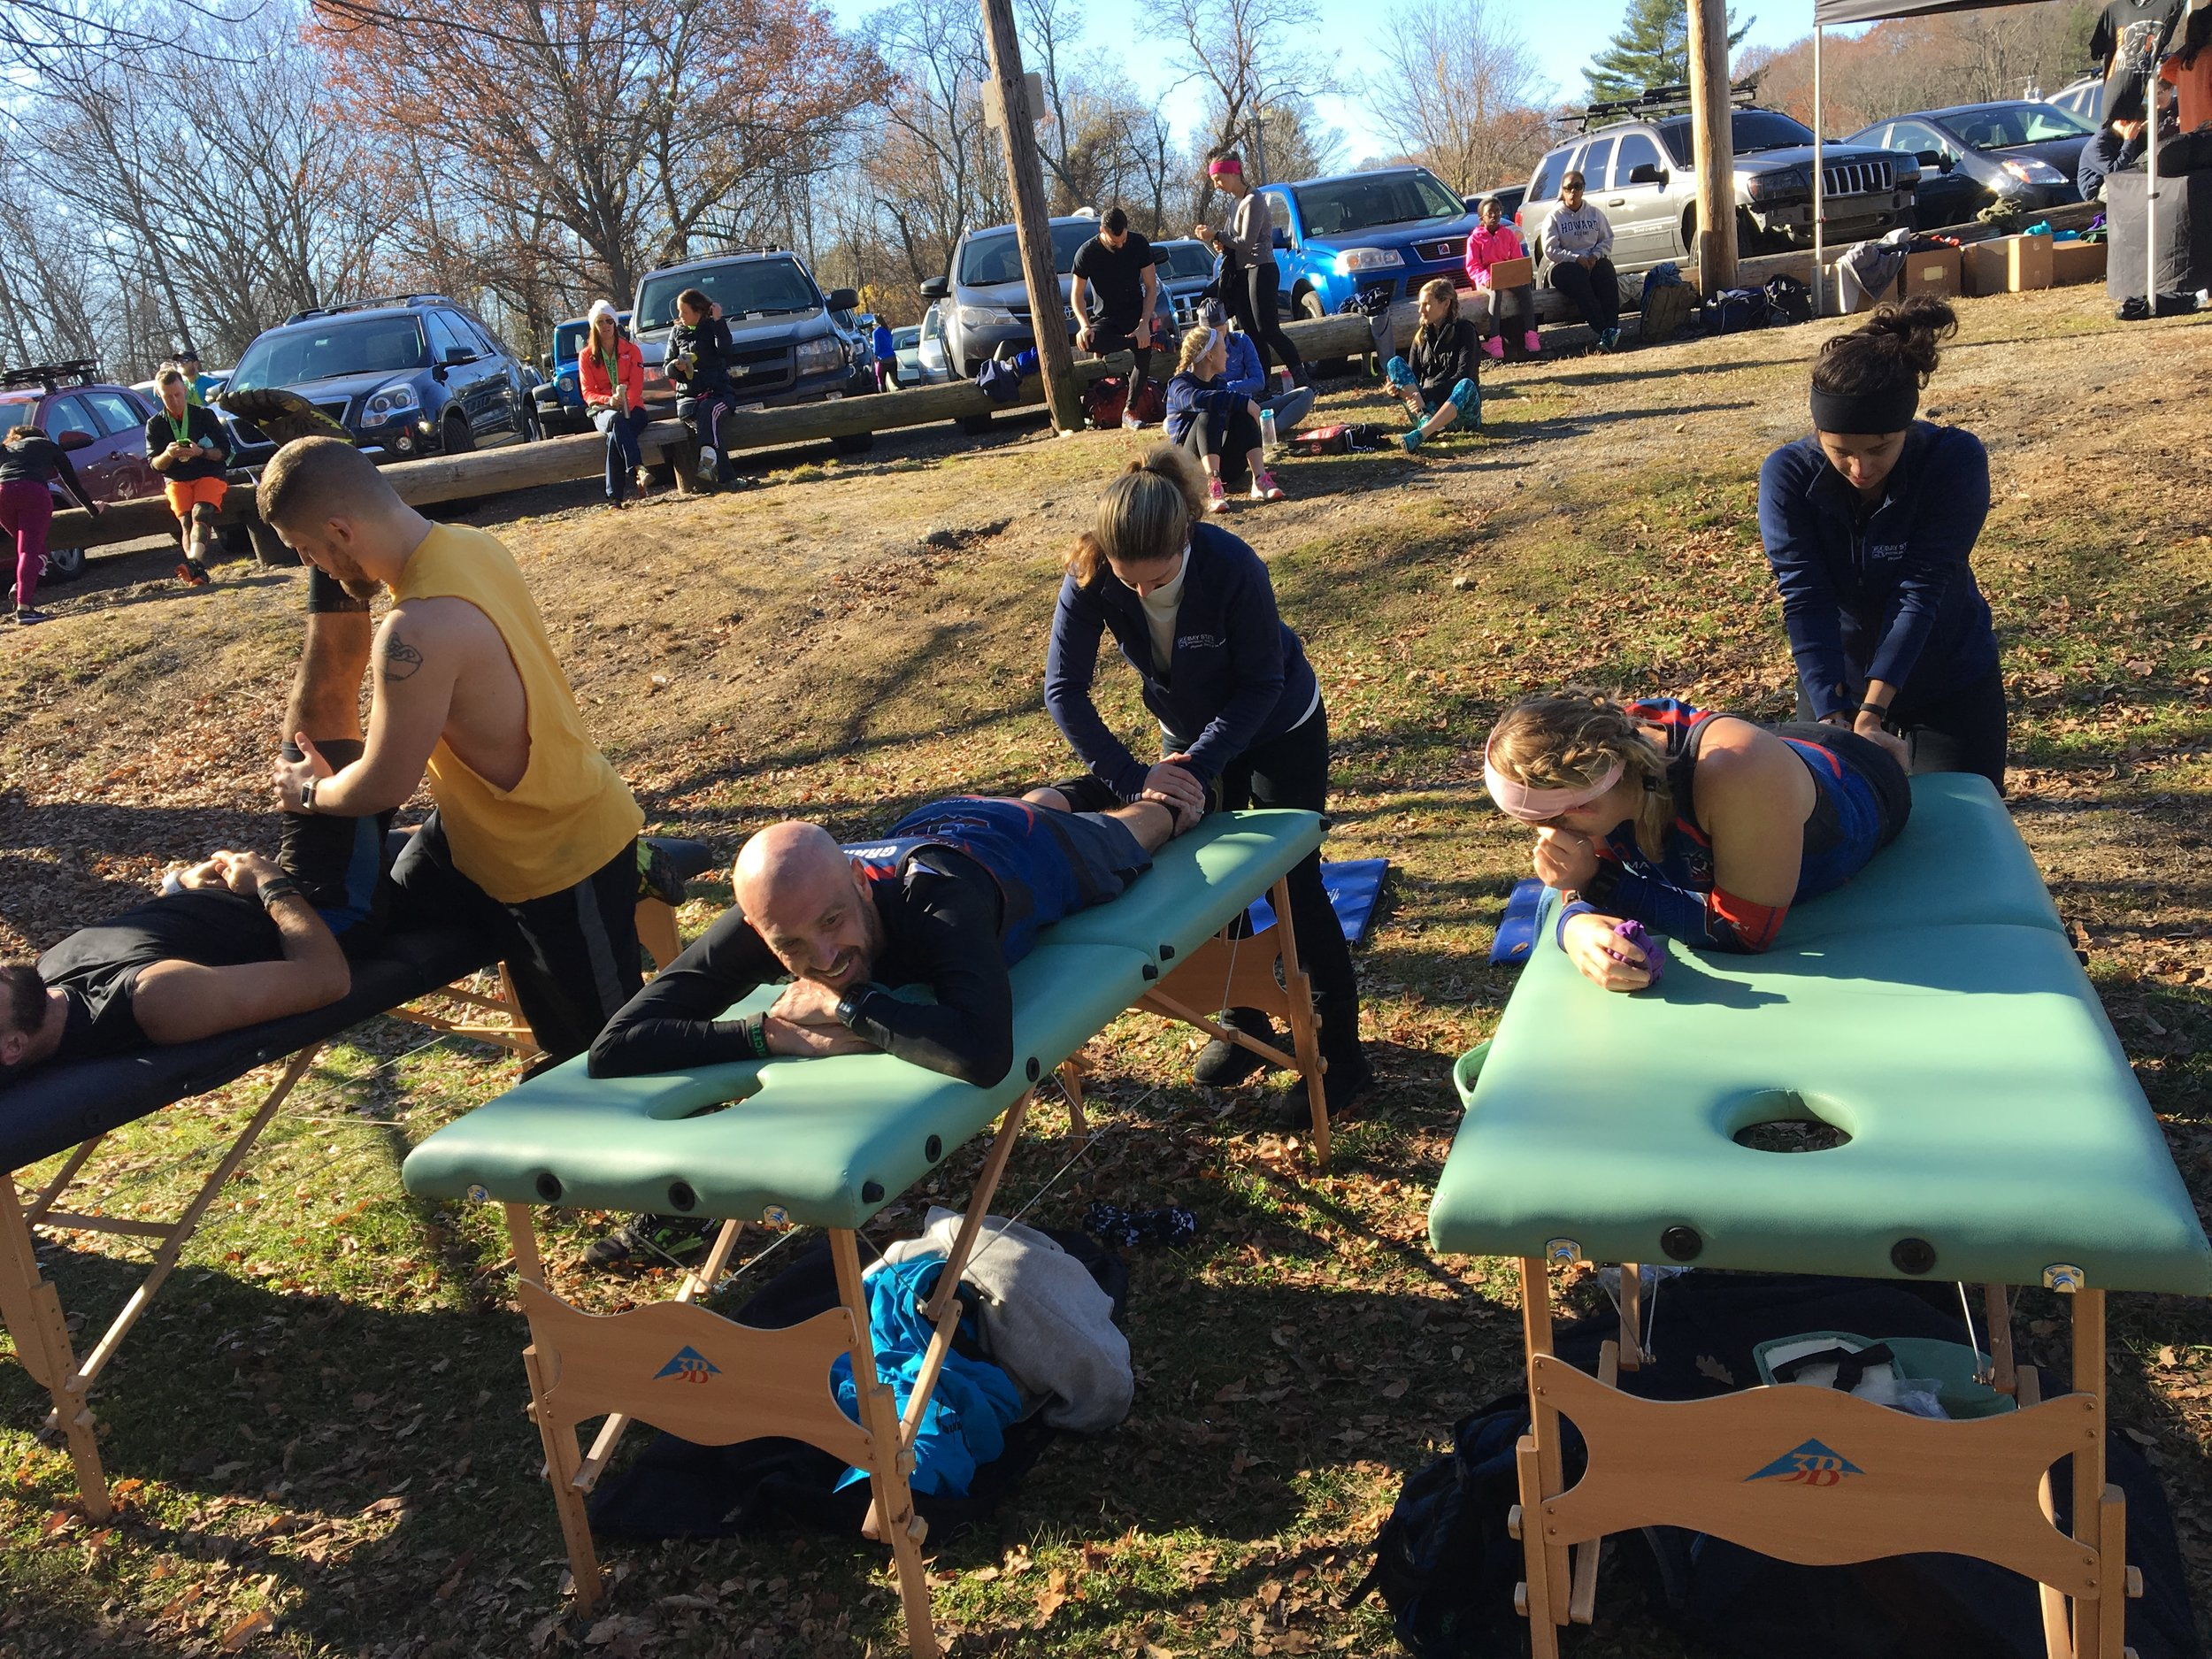 Free massages were available to the athletes throughout the day. Photo Credit: Joe Crupi